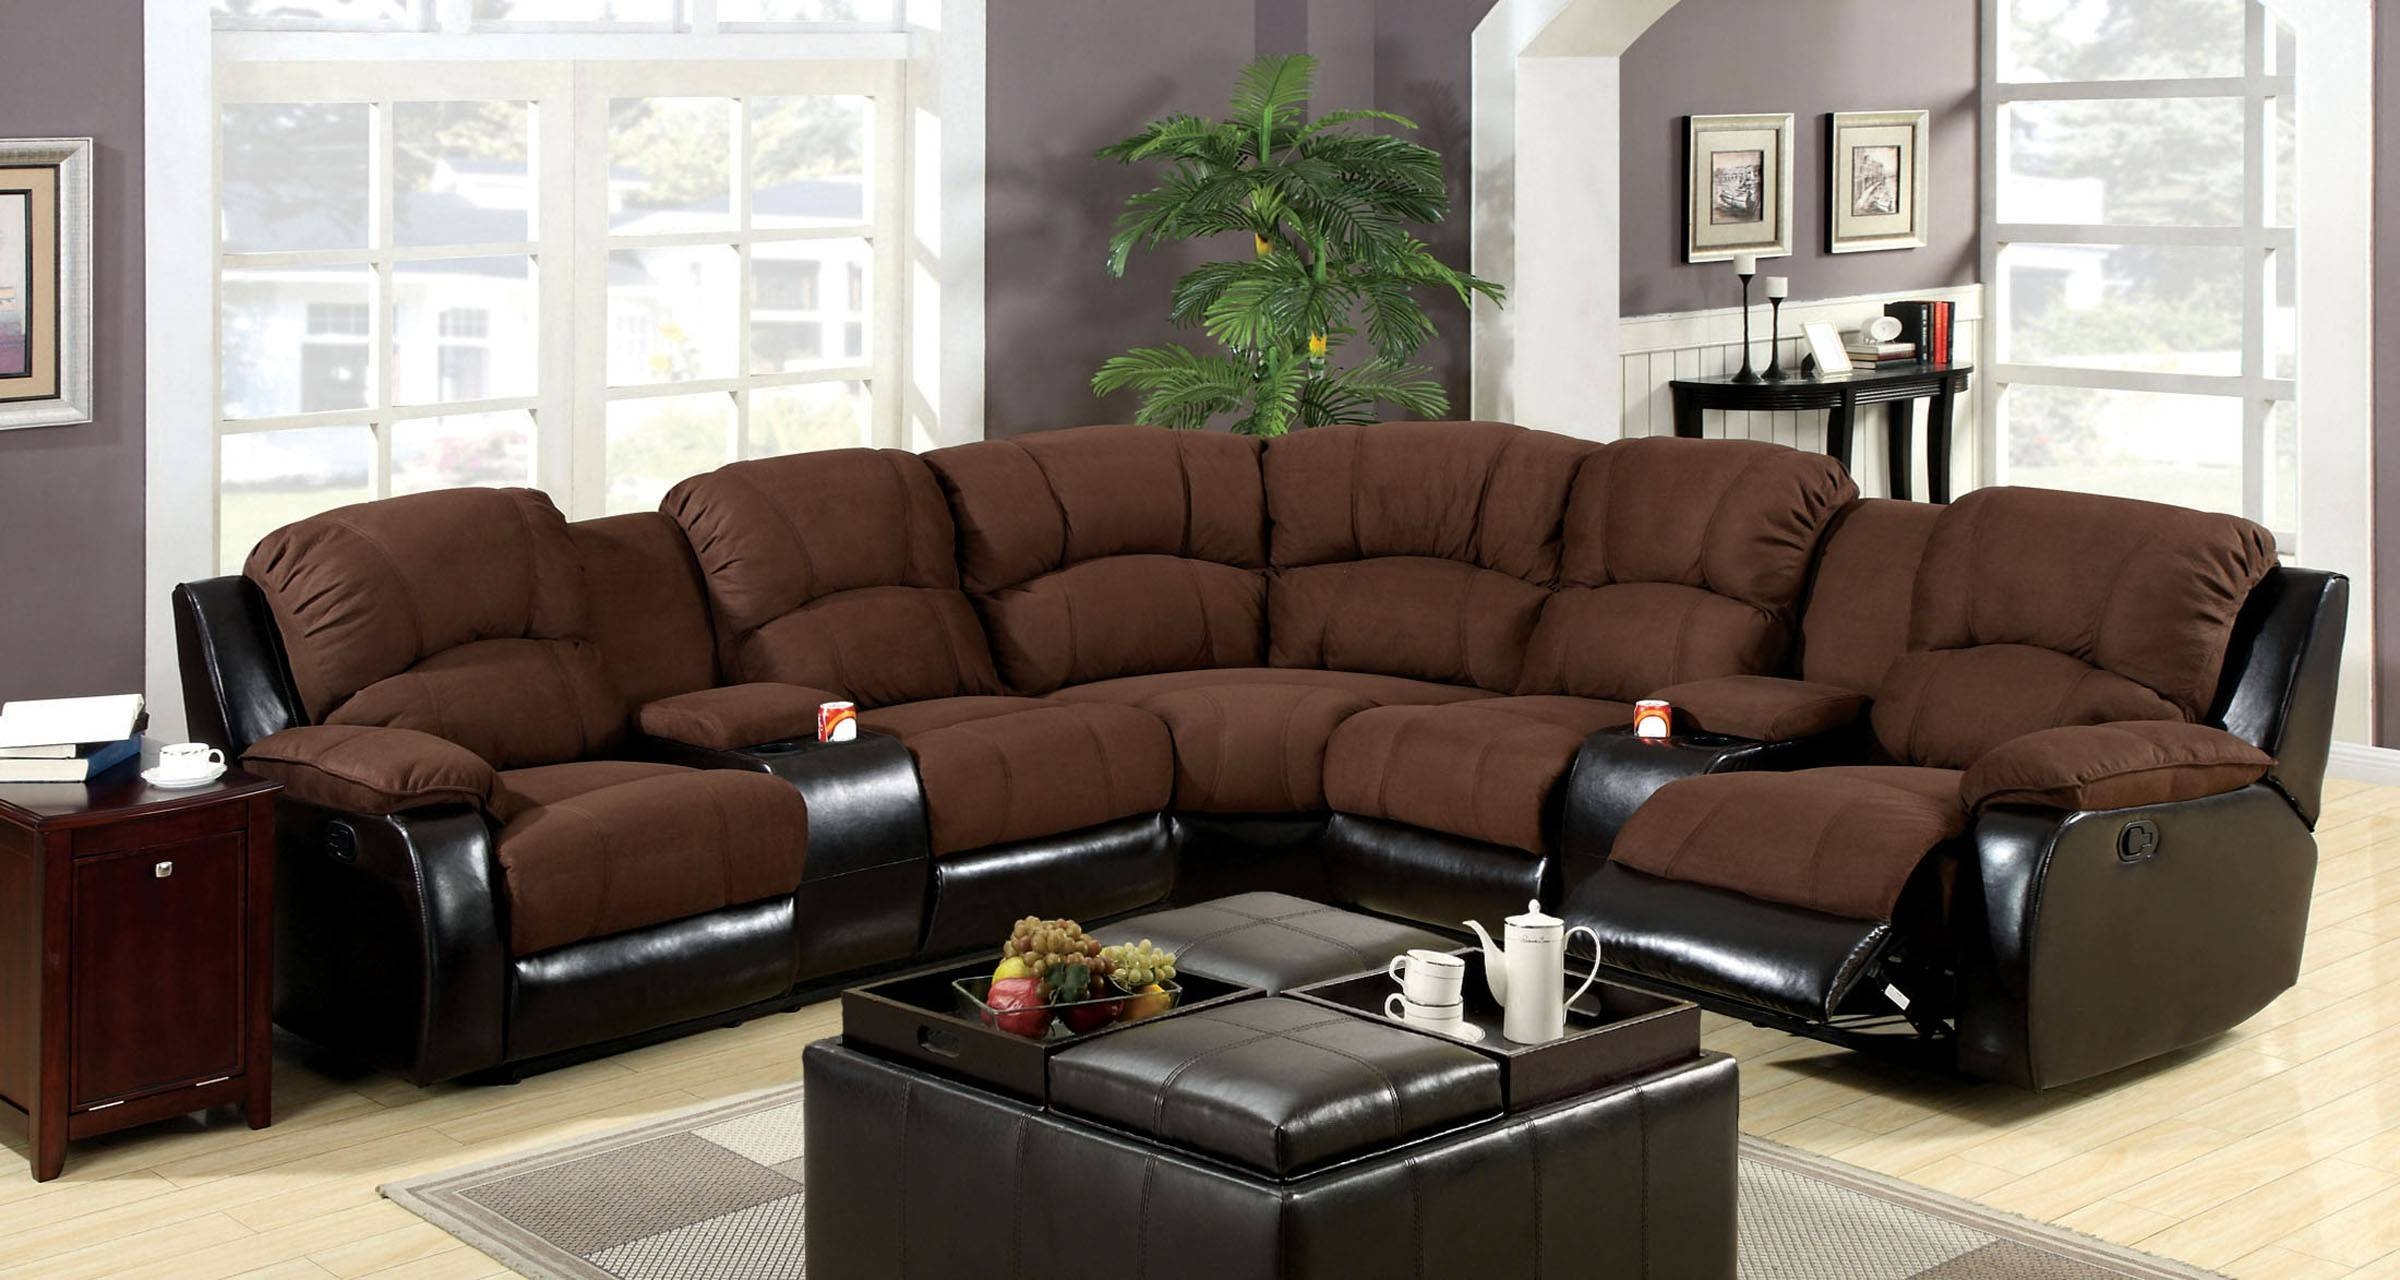 Sectional Sofas With Recliners And Cup Holders - Tourdecarroll with Sofas With Cup Holders (Image 15 of 15)